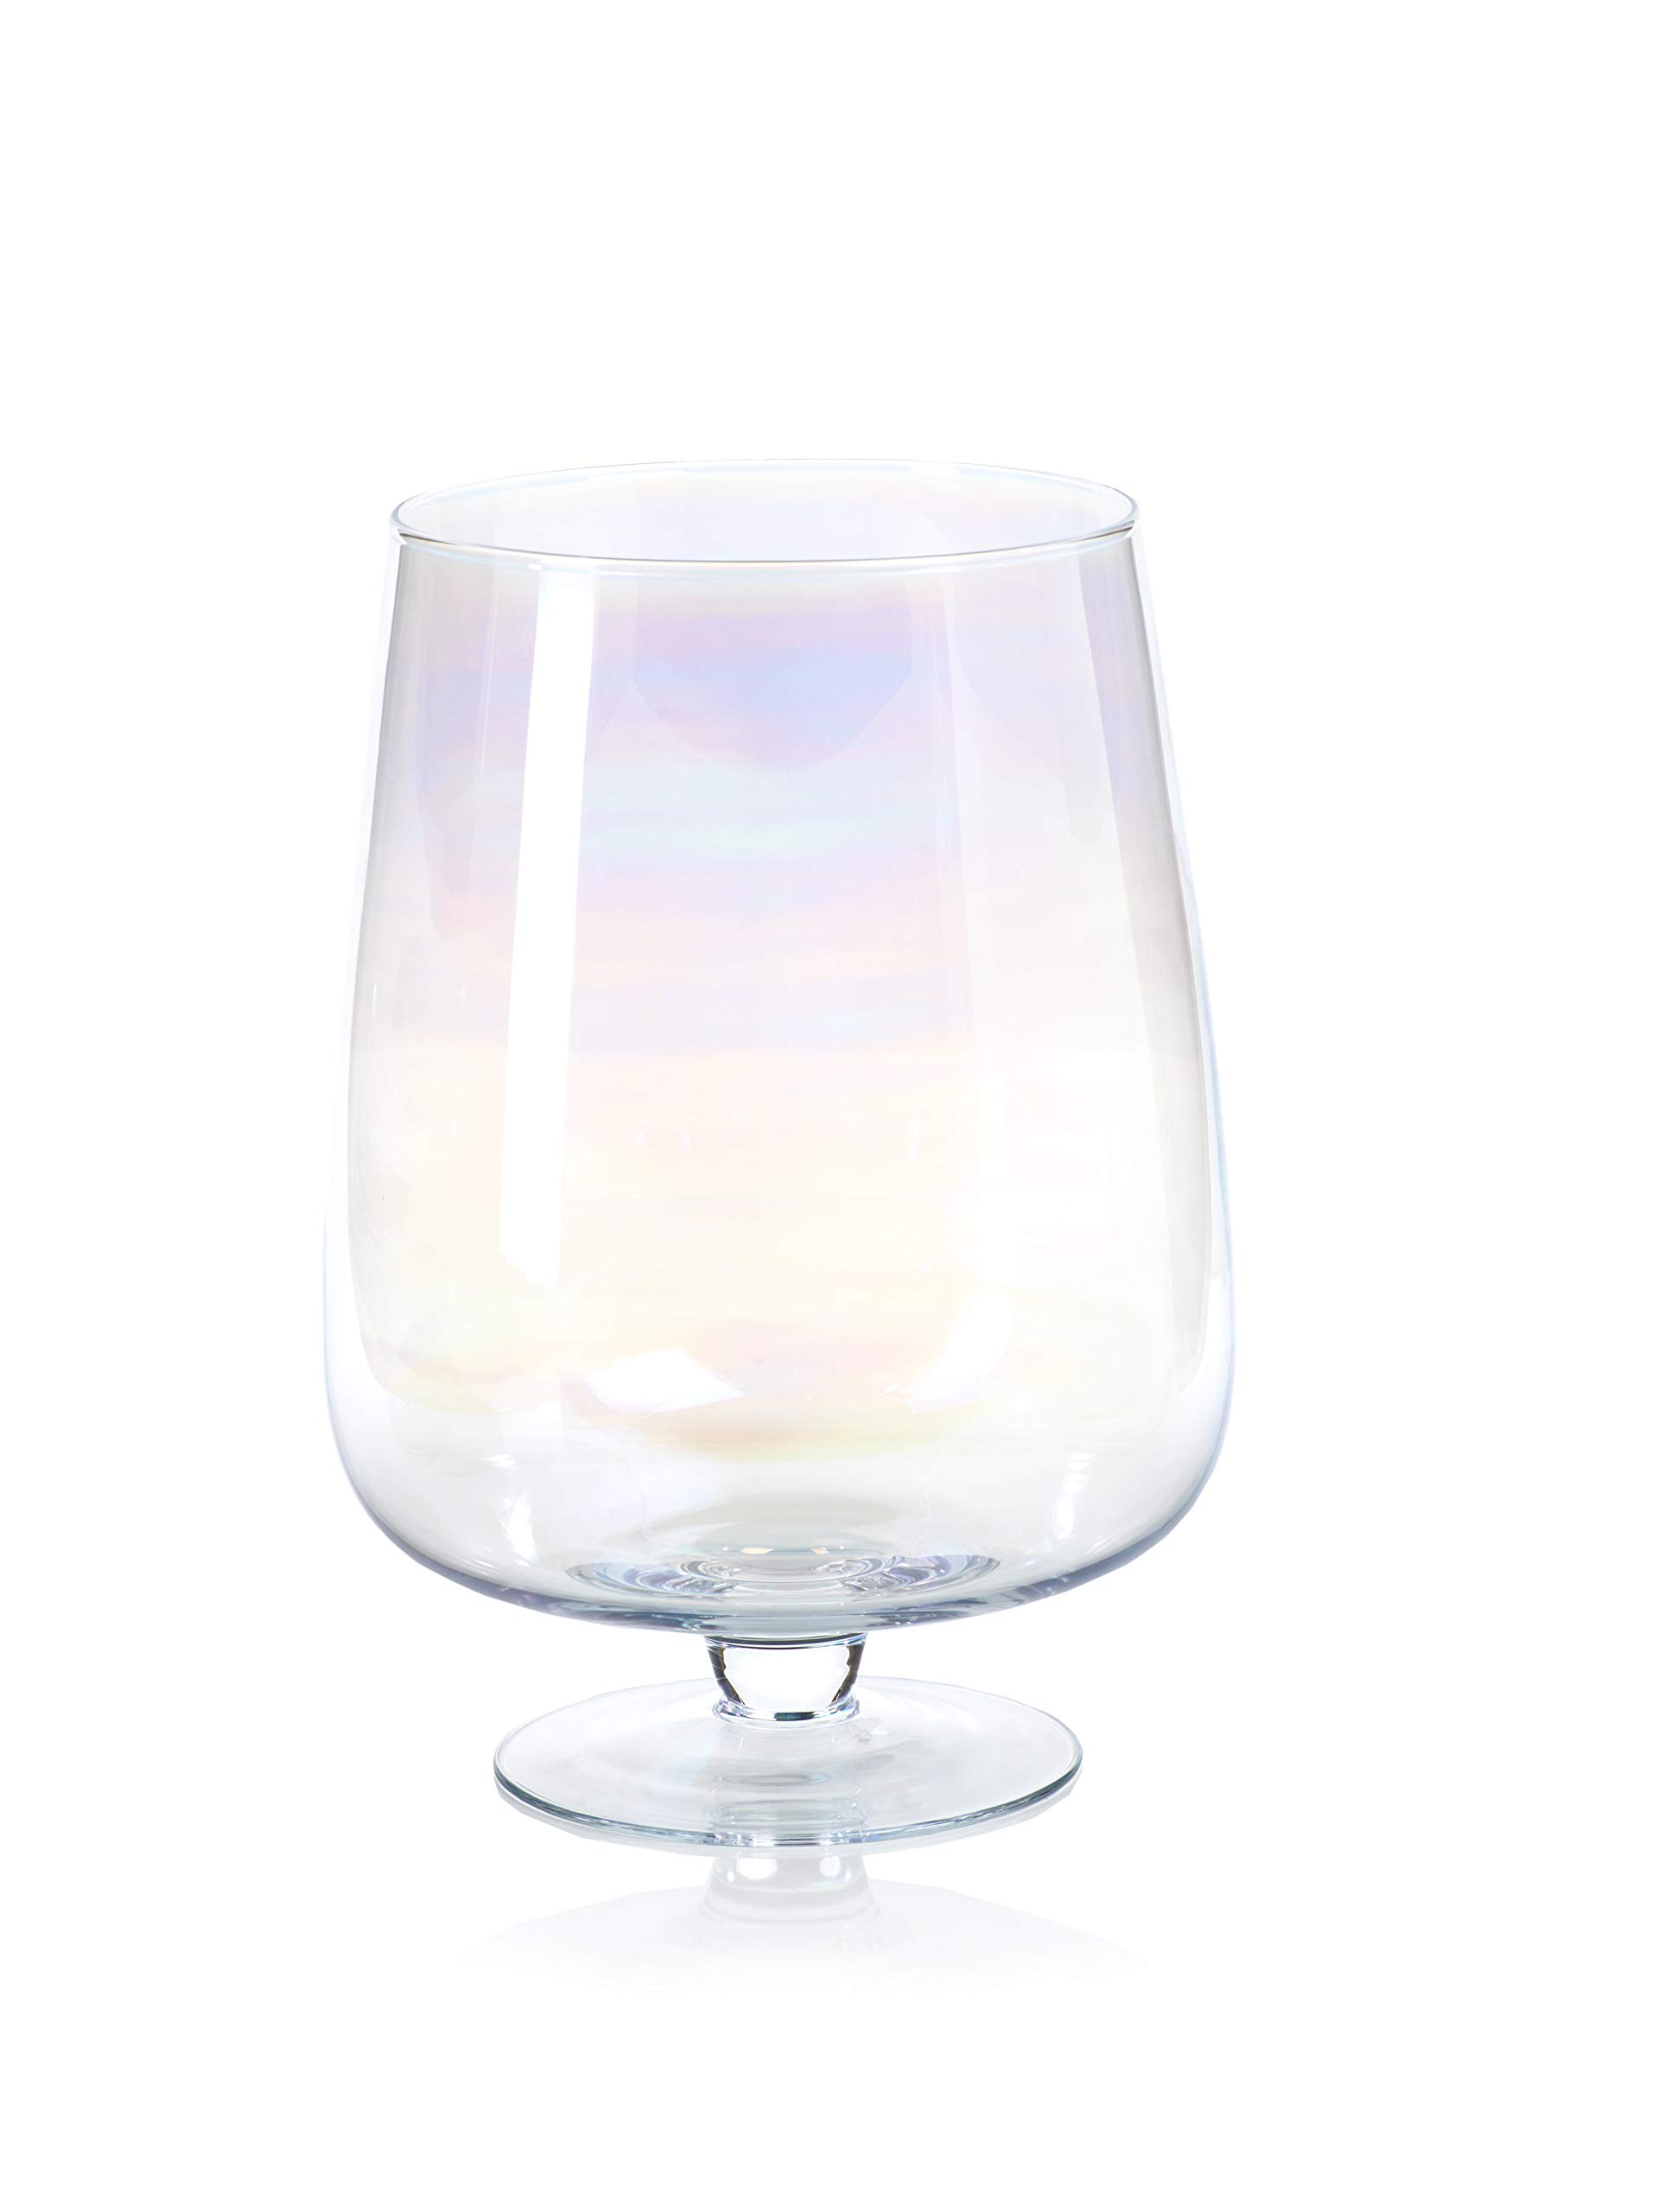 Zodax Shama Pearl Luster Glass Candle Holder, Large Hurricane, Pink